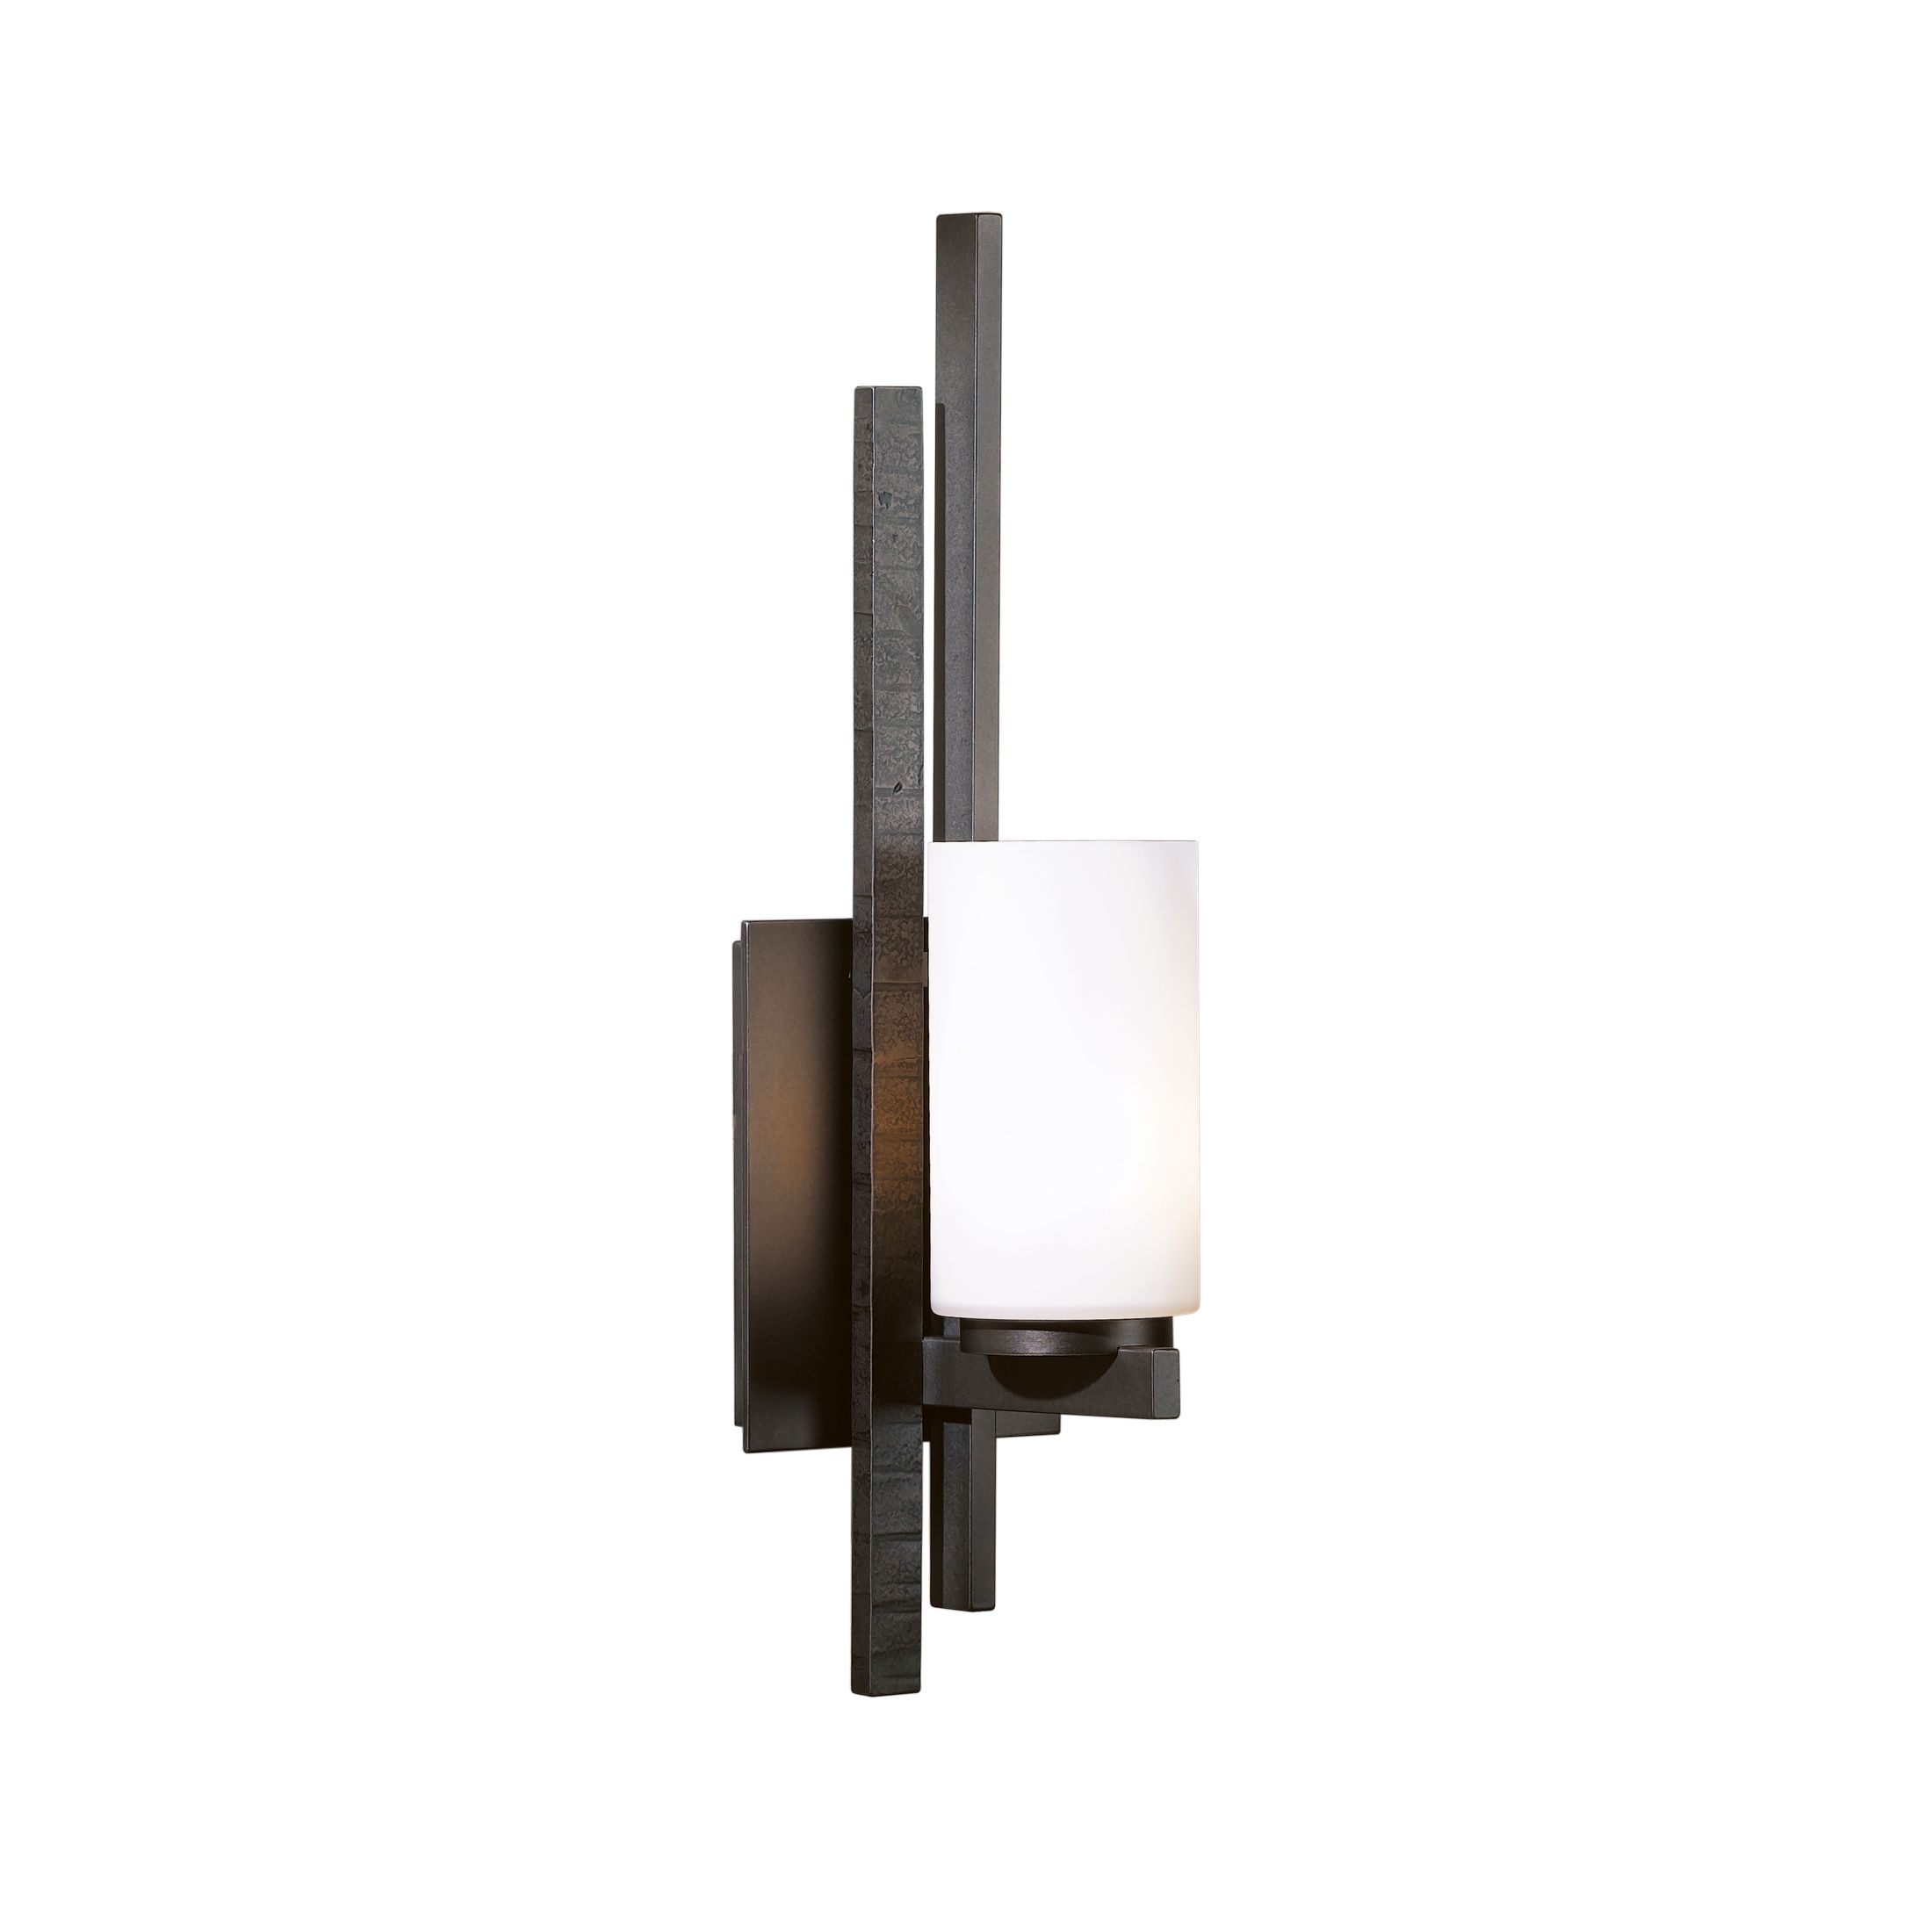 sconce detail ethos products hubbardton forge led product